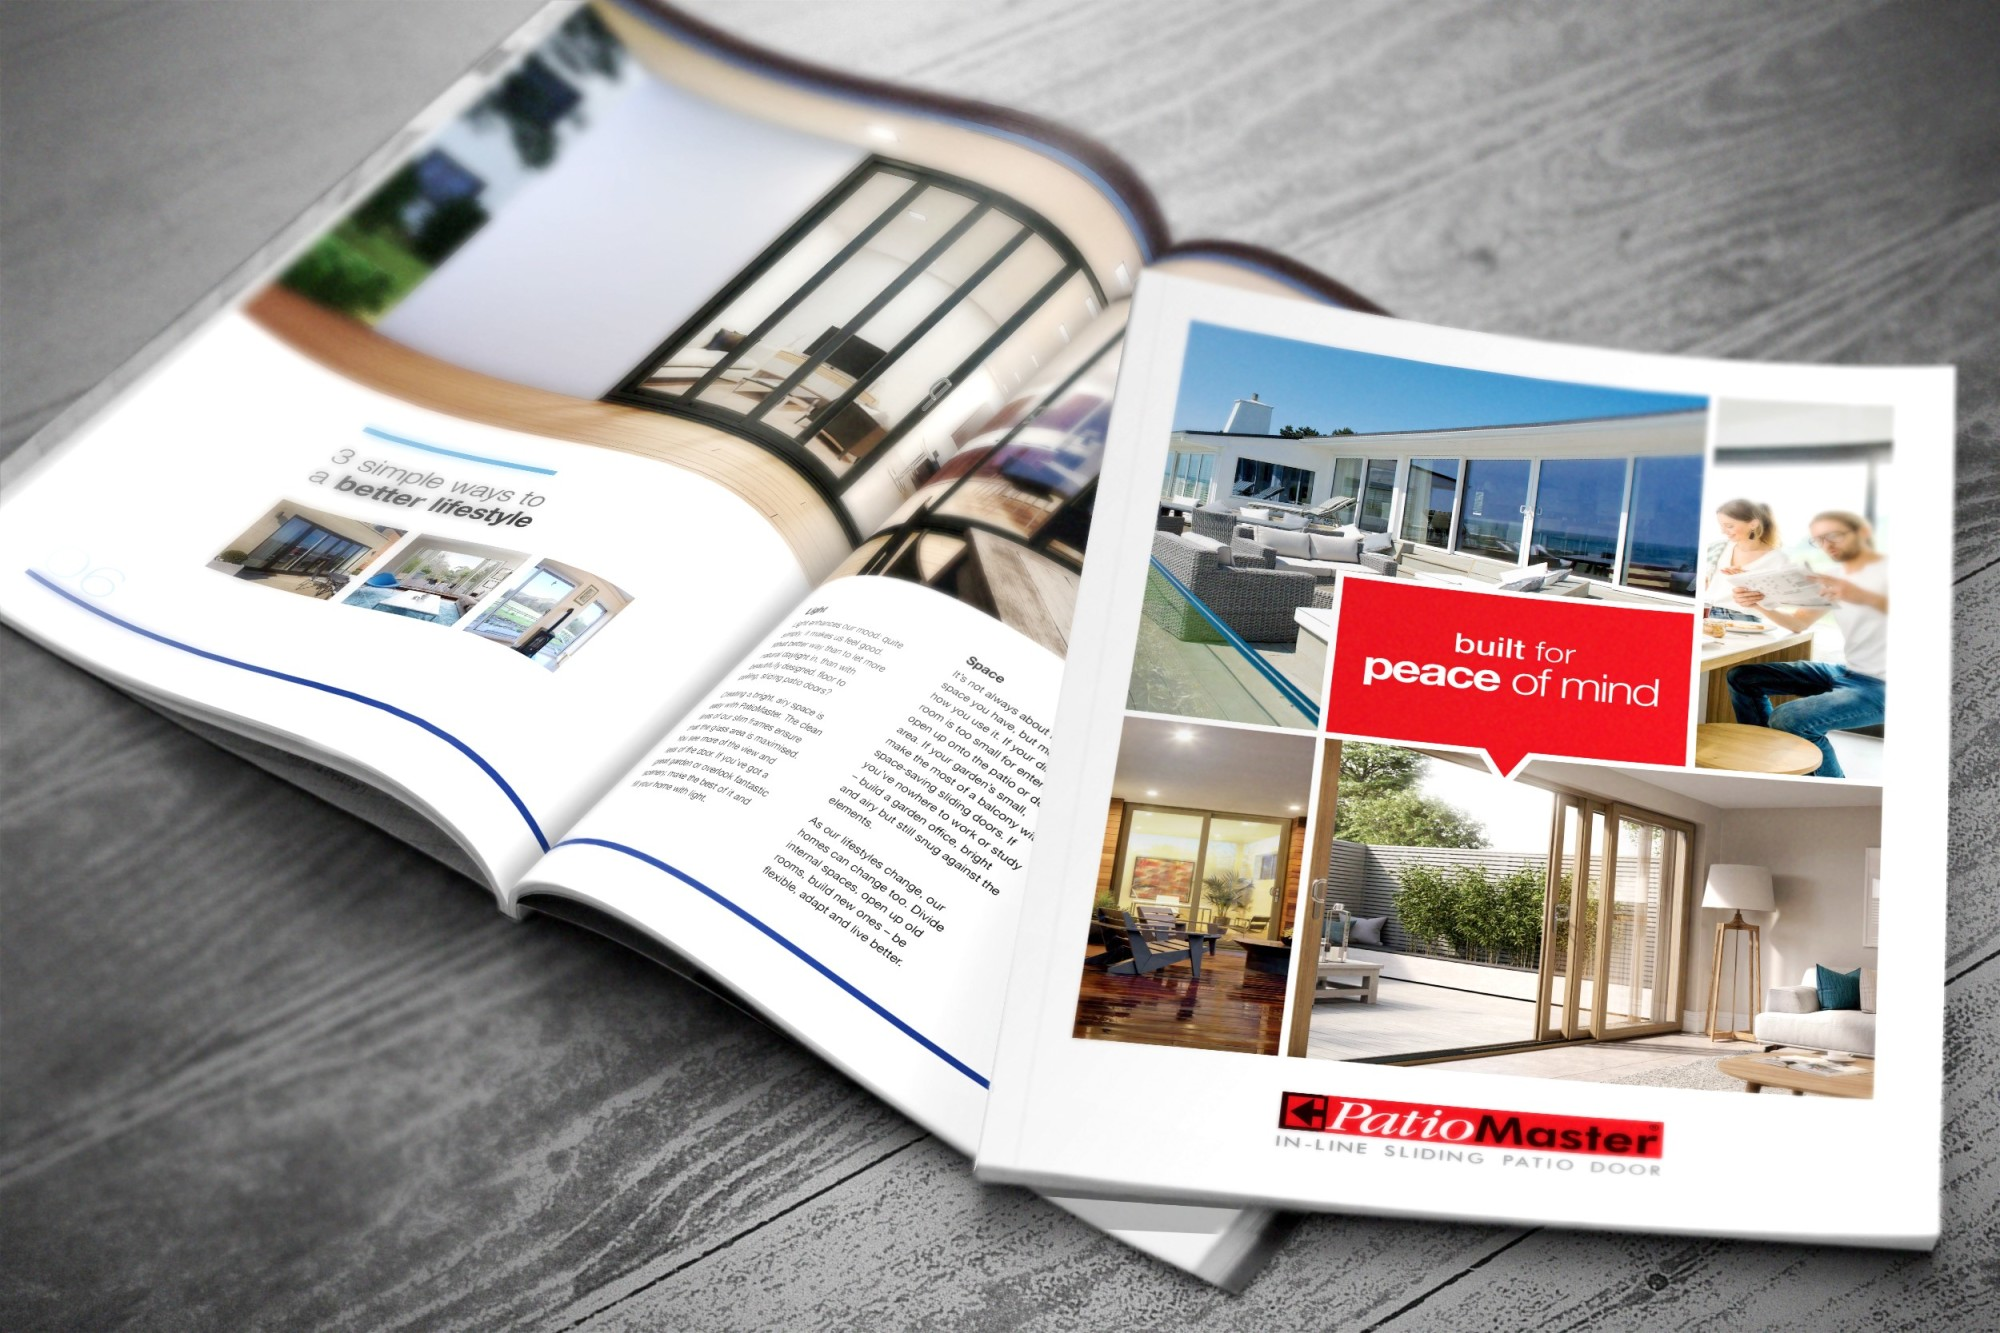 The new PatioMaster retail brochure